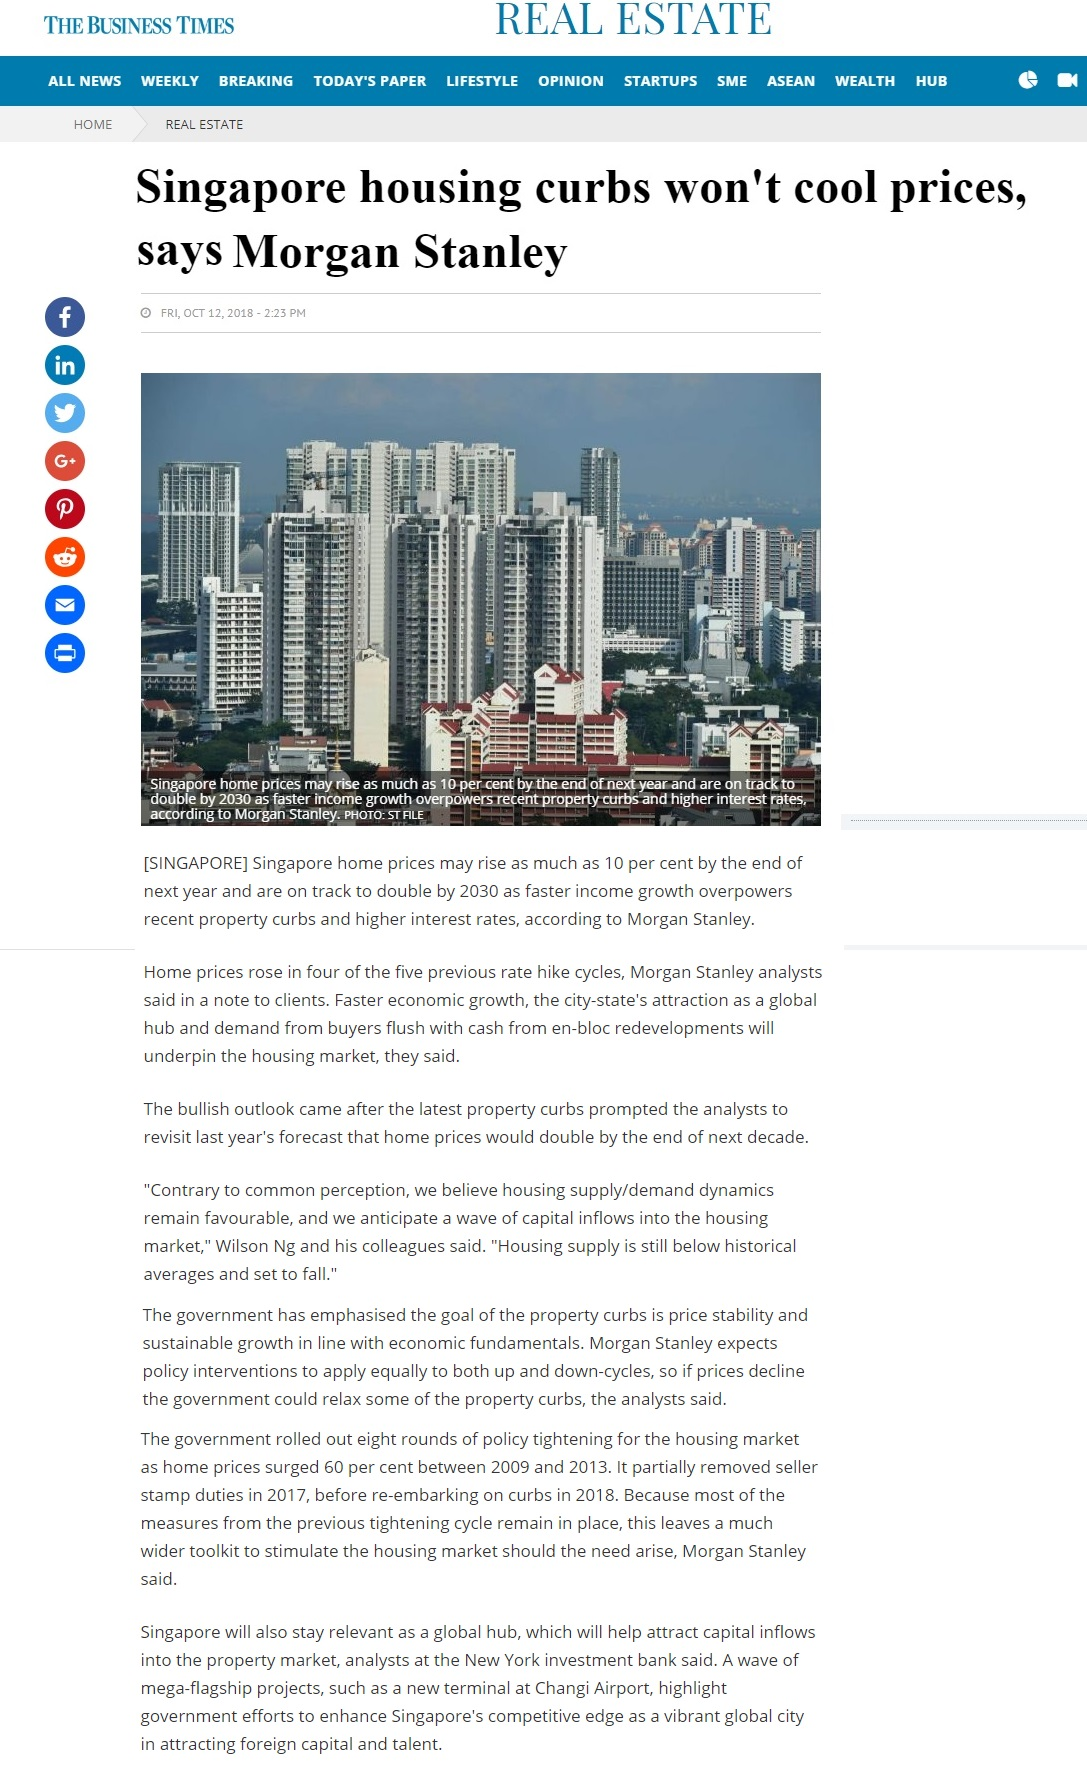 park-colonial-singapore-housing-curbs-wont-cool-prices-says-morgan-stanley-business-time